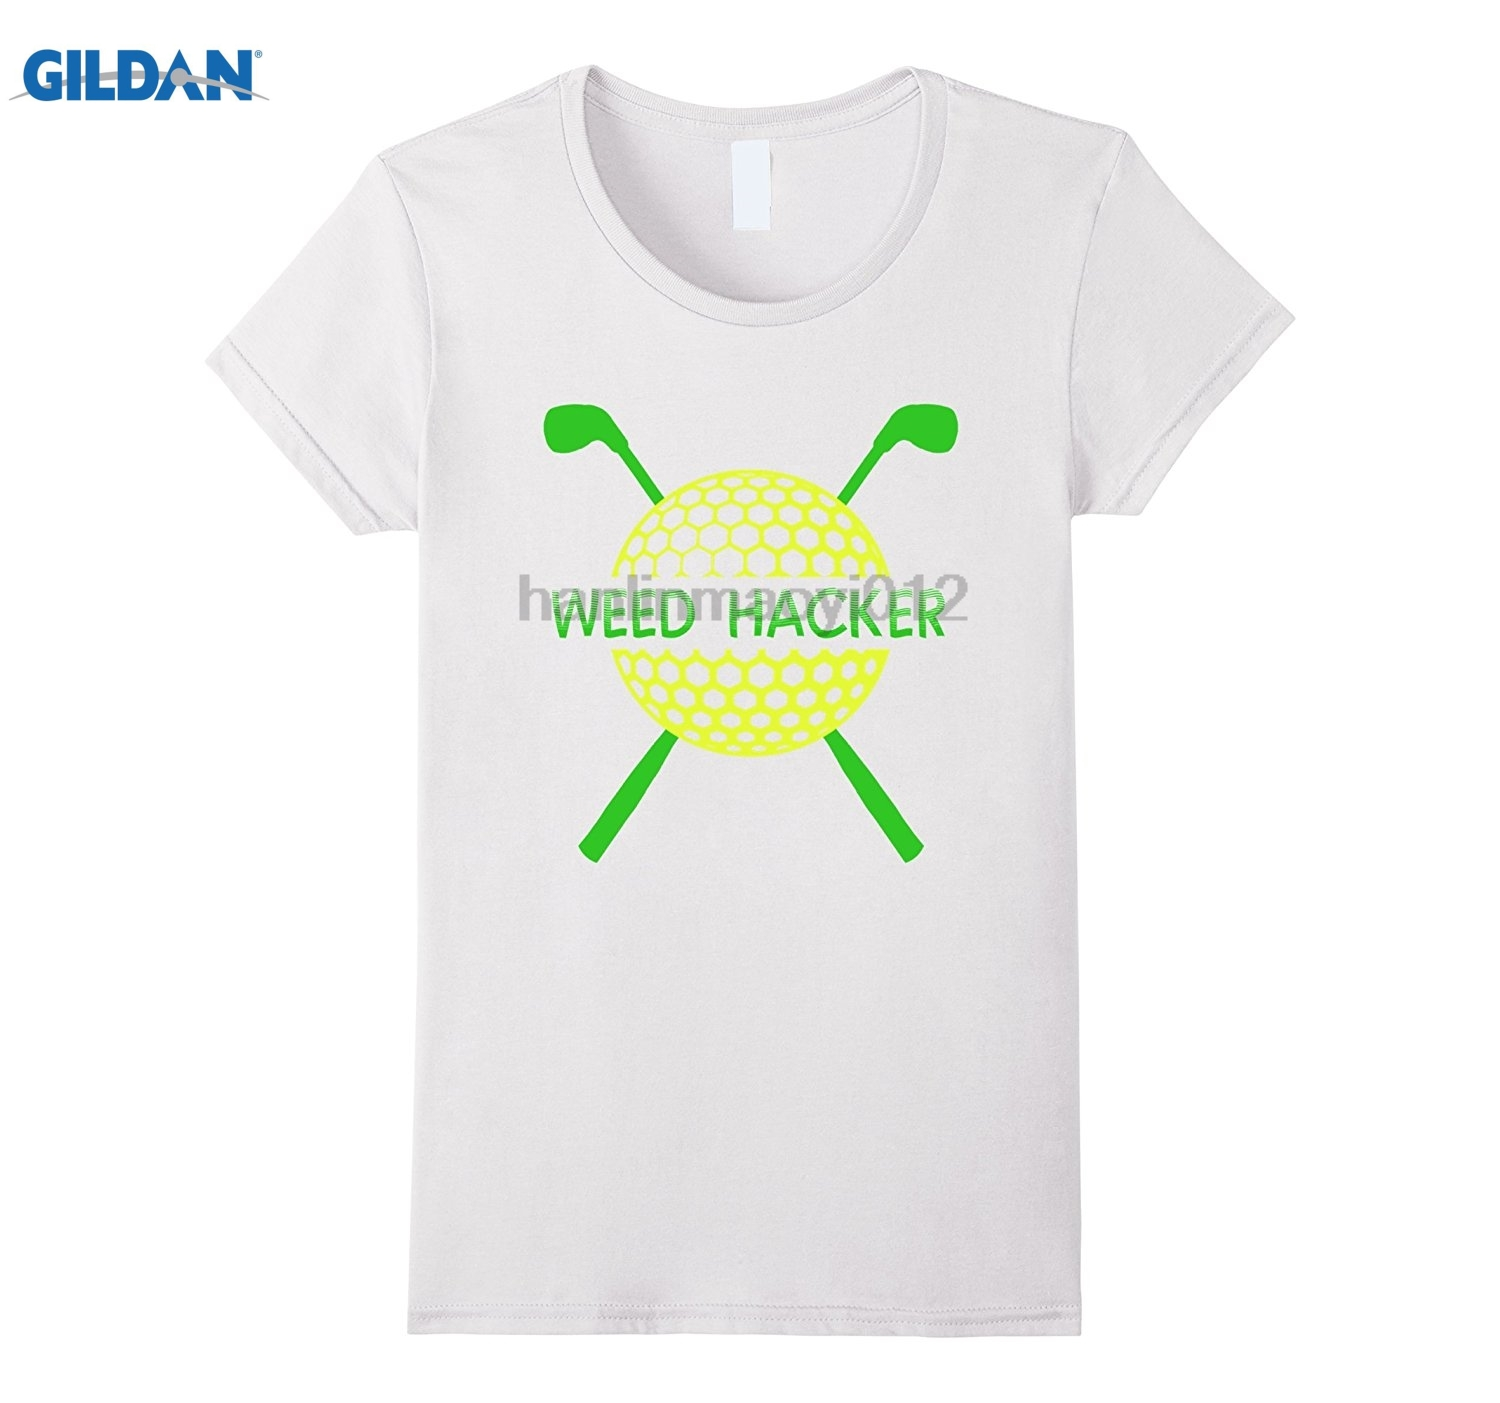 GILDAN Funny Weed Hacker Golfing T-Shirt 2018 Latest Hot Cotton T-Shirt Dress female T-s ...